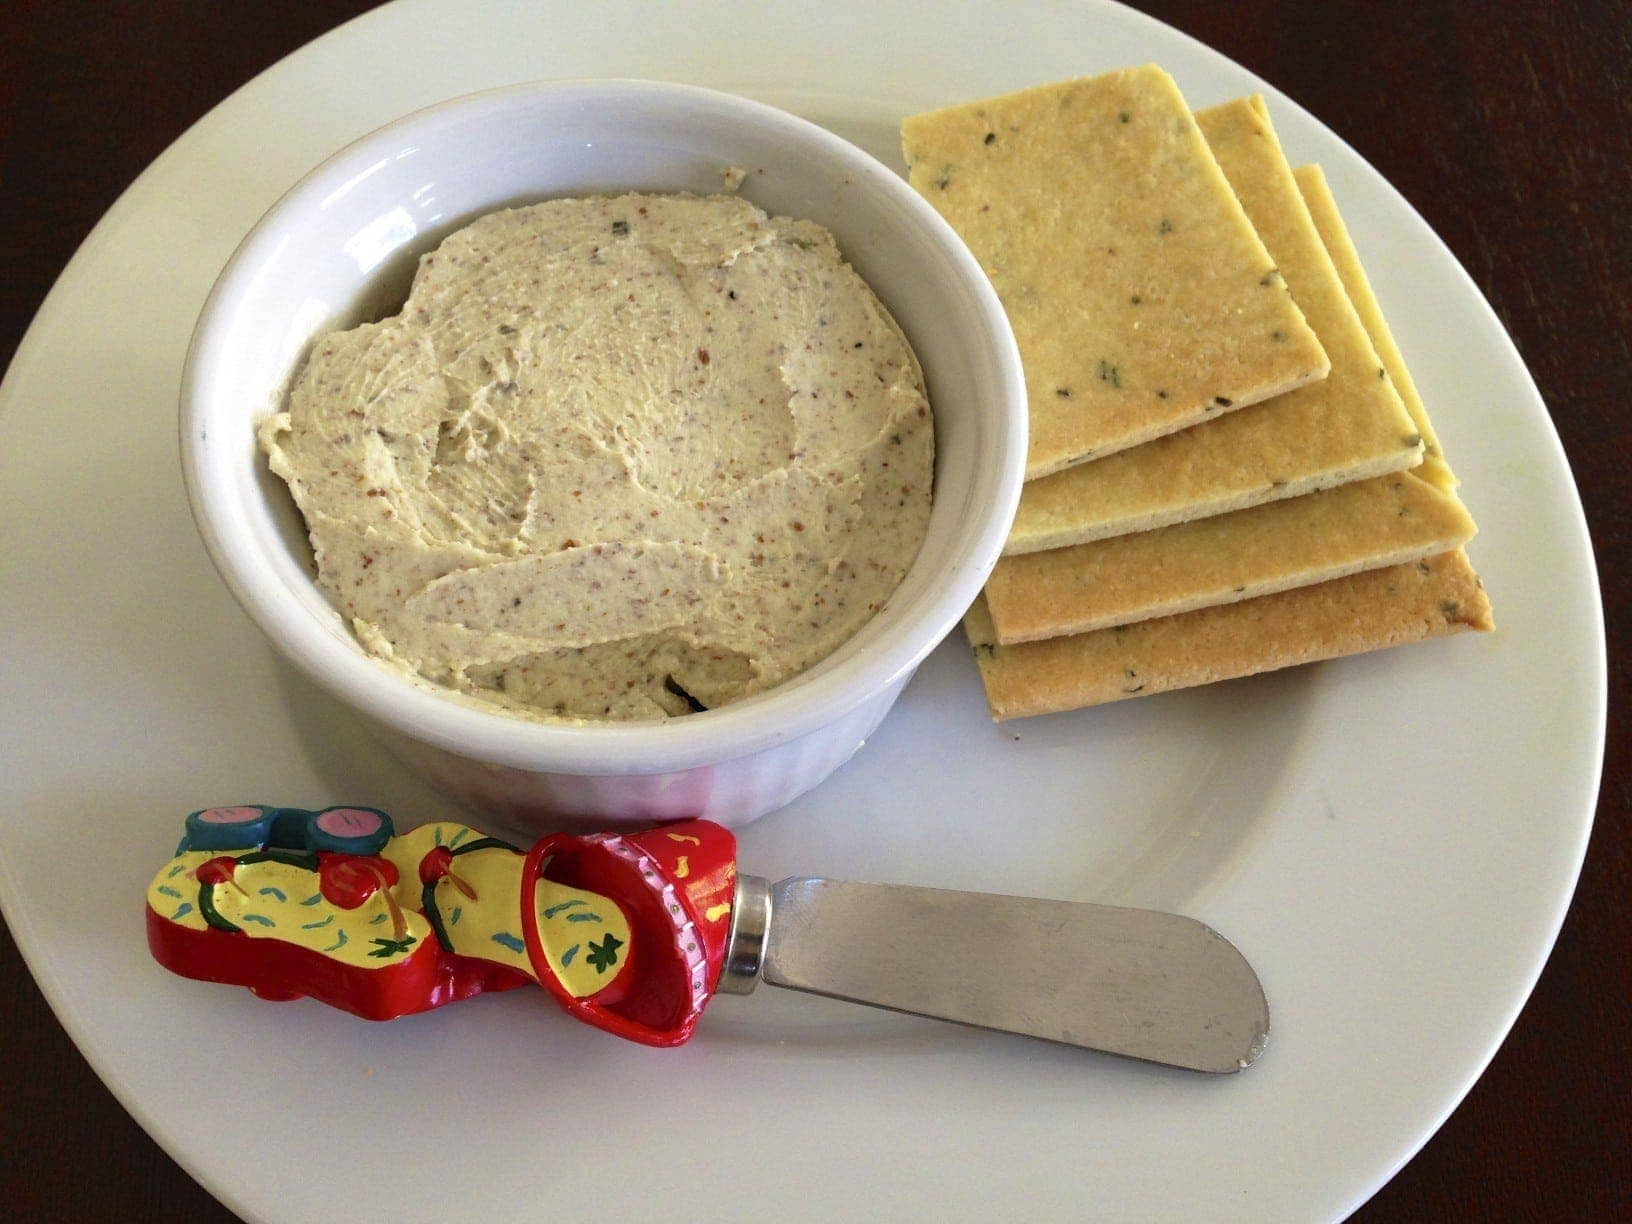 Roasted Garlic Basil Cheese Dip and Homemade Gluten Free Basil Crackers2